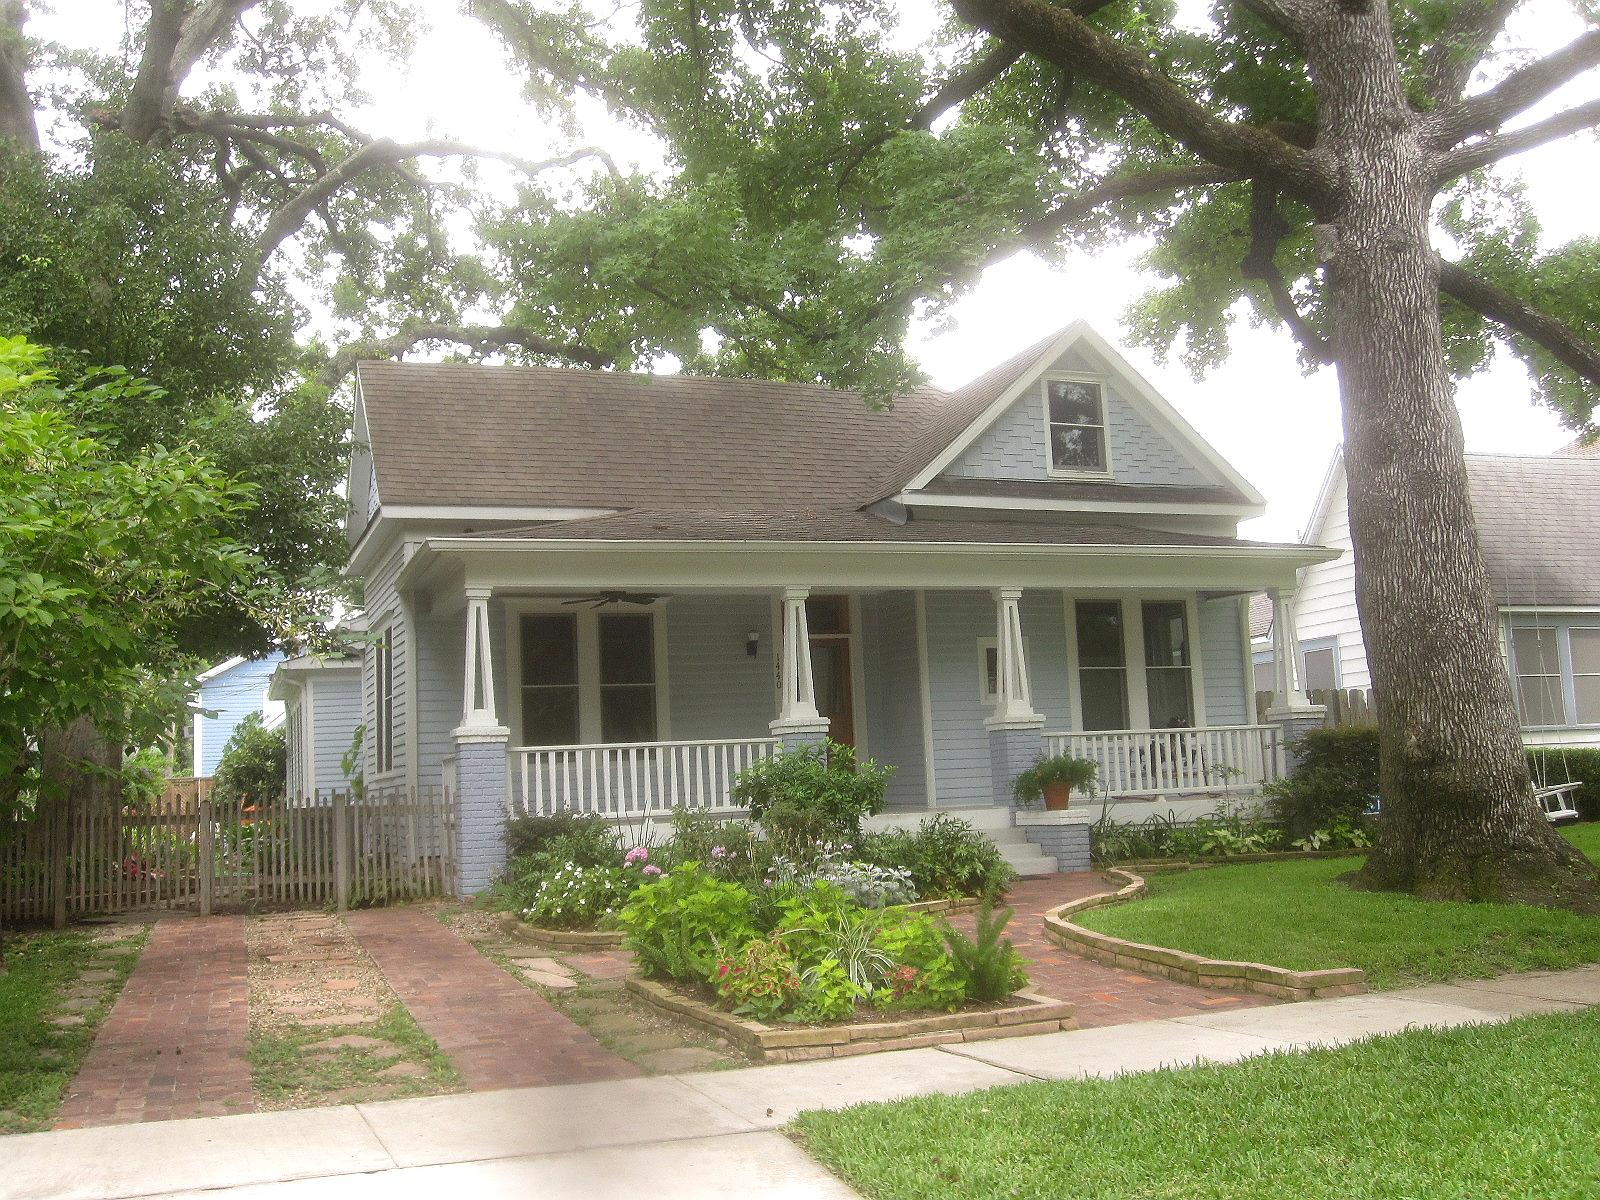 The other houston bungalow front yard garden ideas Cottage houses